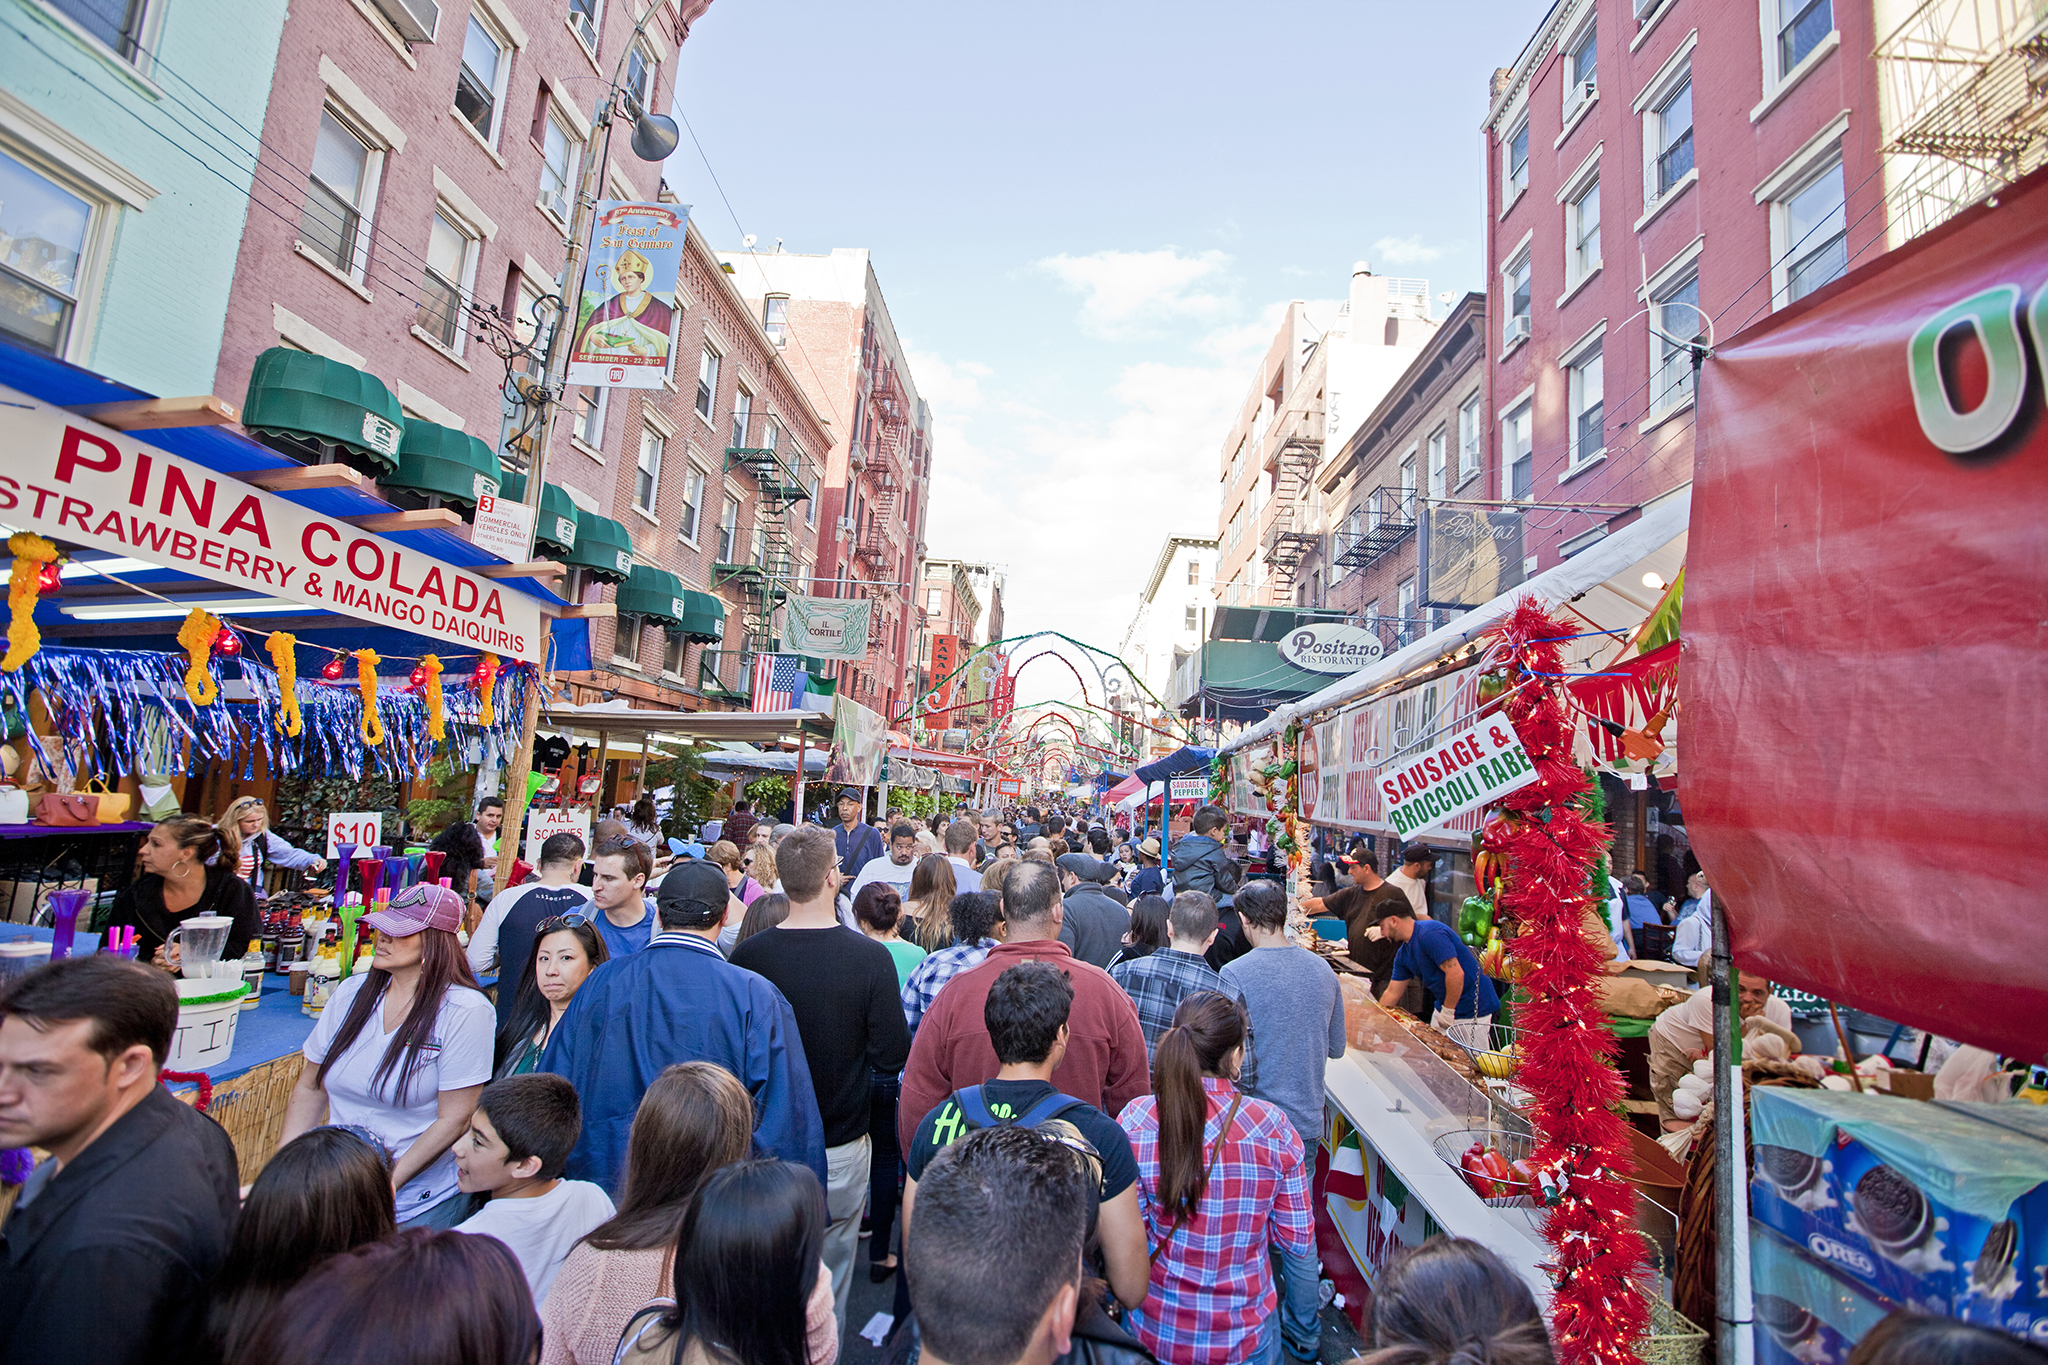 Touristy spots in Little Italy that are actually good